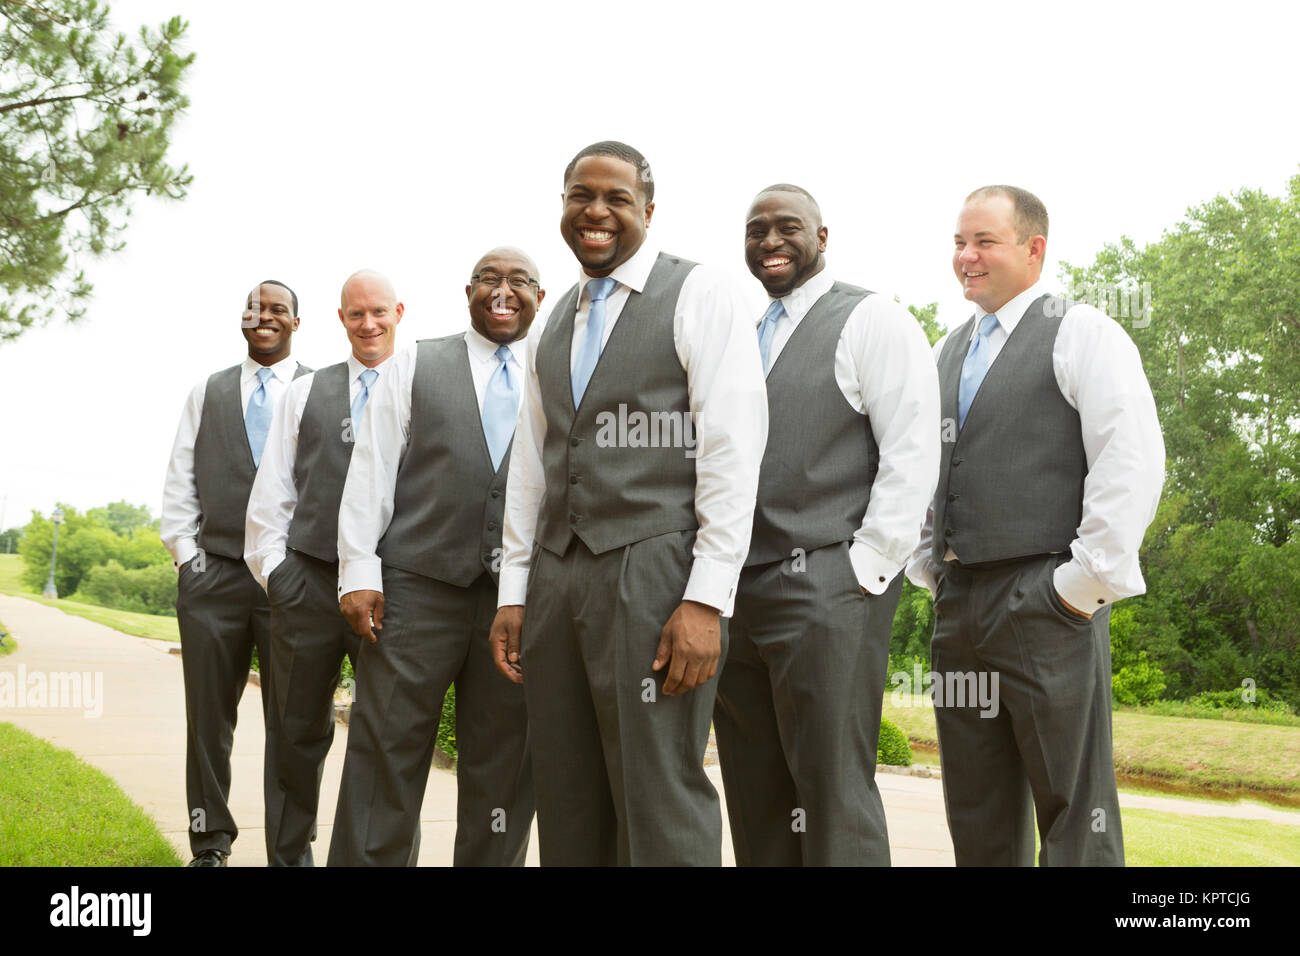 Groom and groomsmen smiling at a wedding. Stock Photo